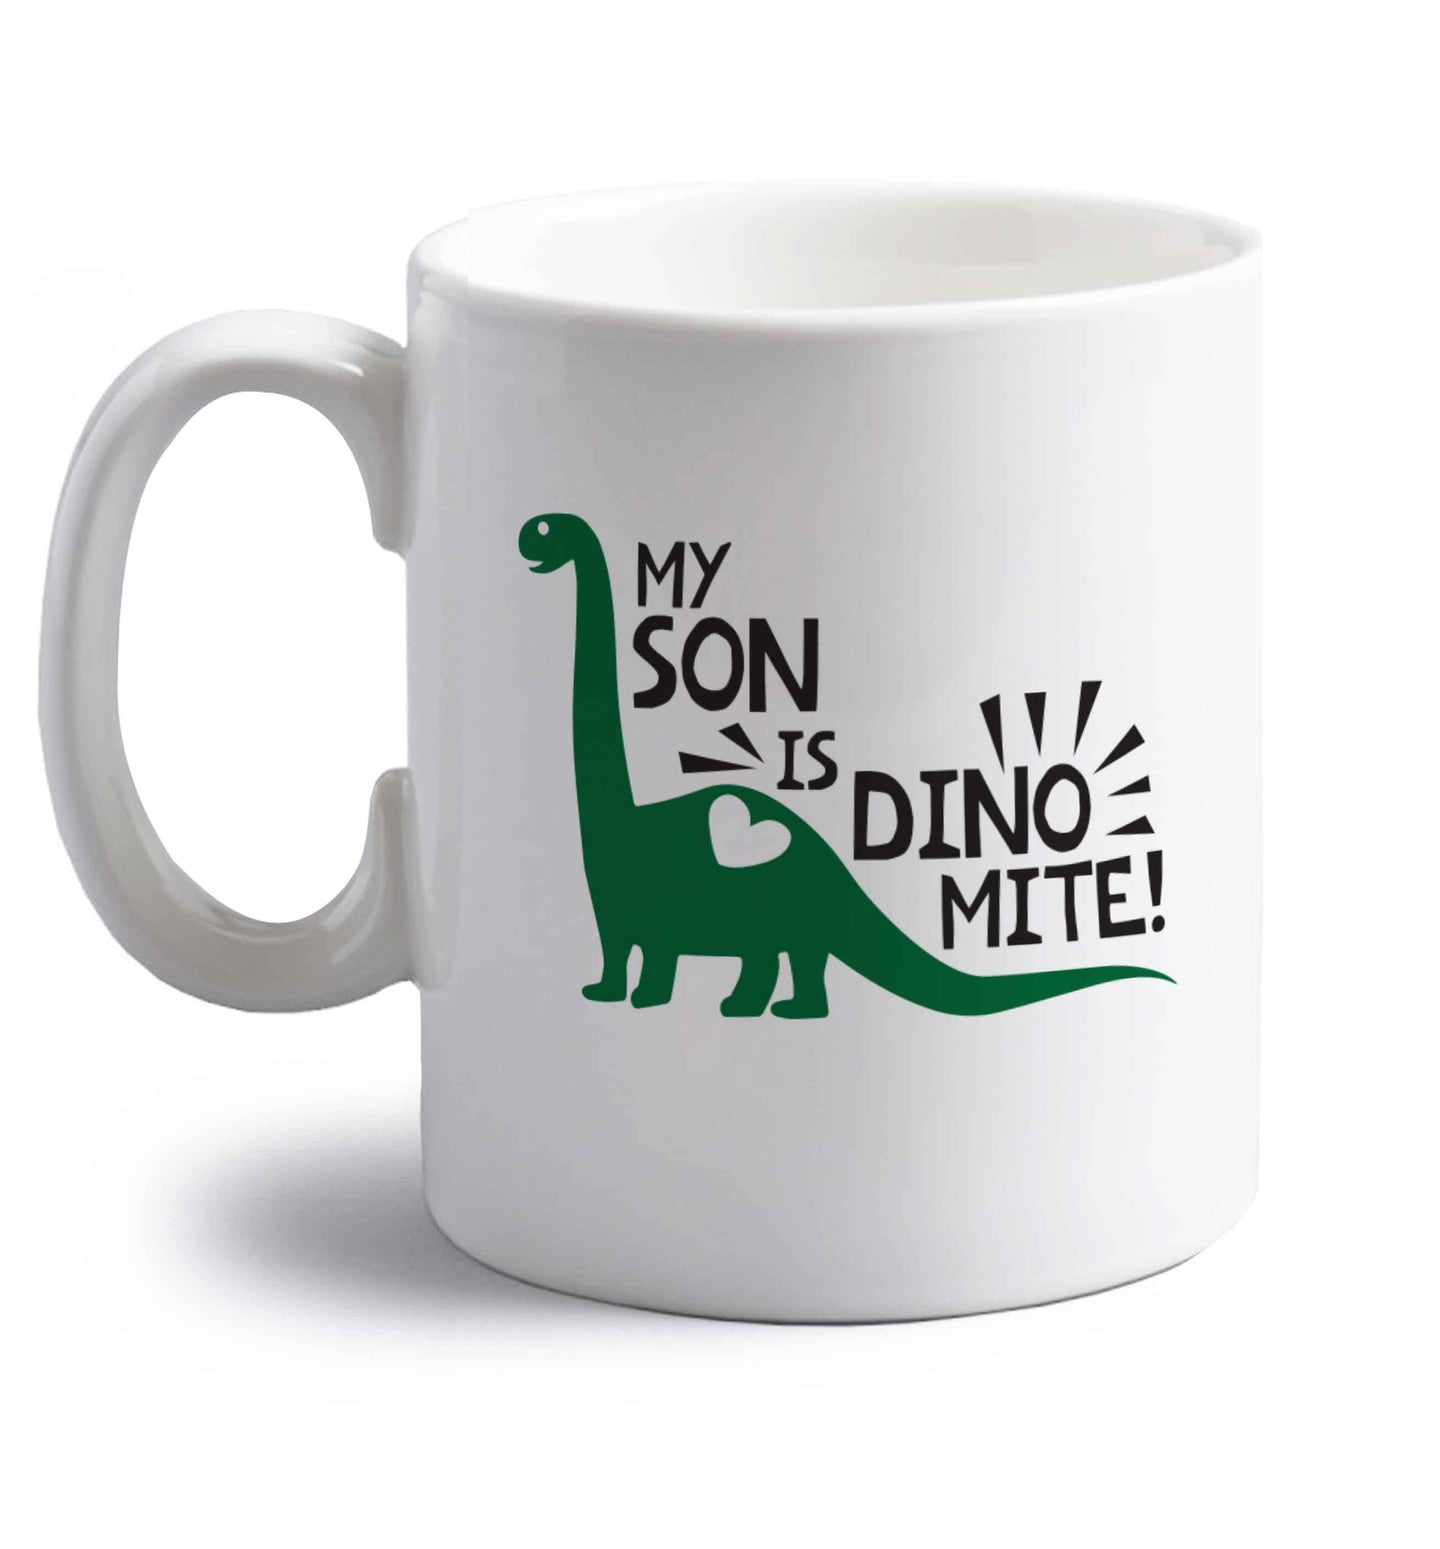 My son is dinomite! right handed white ceramic mug